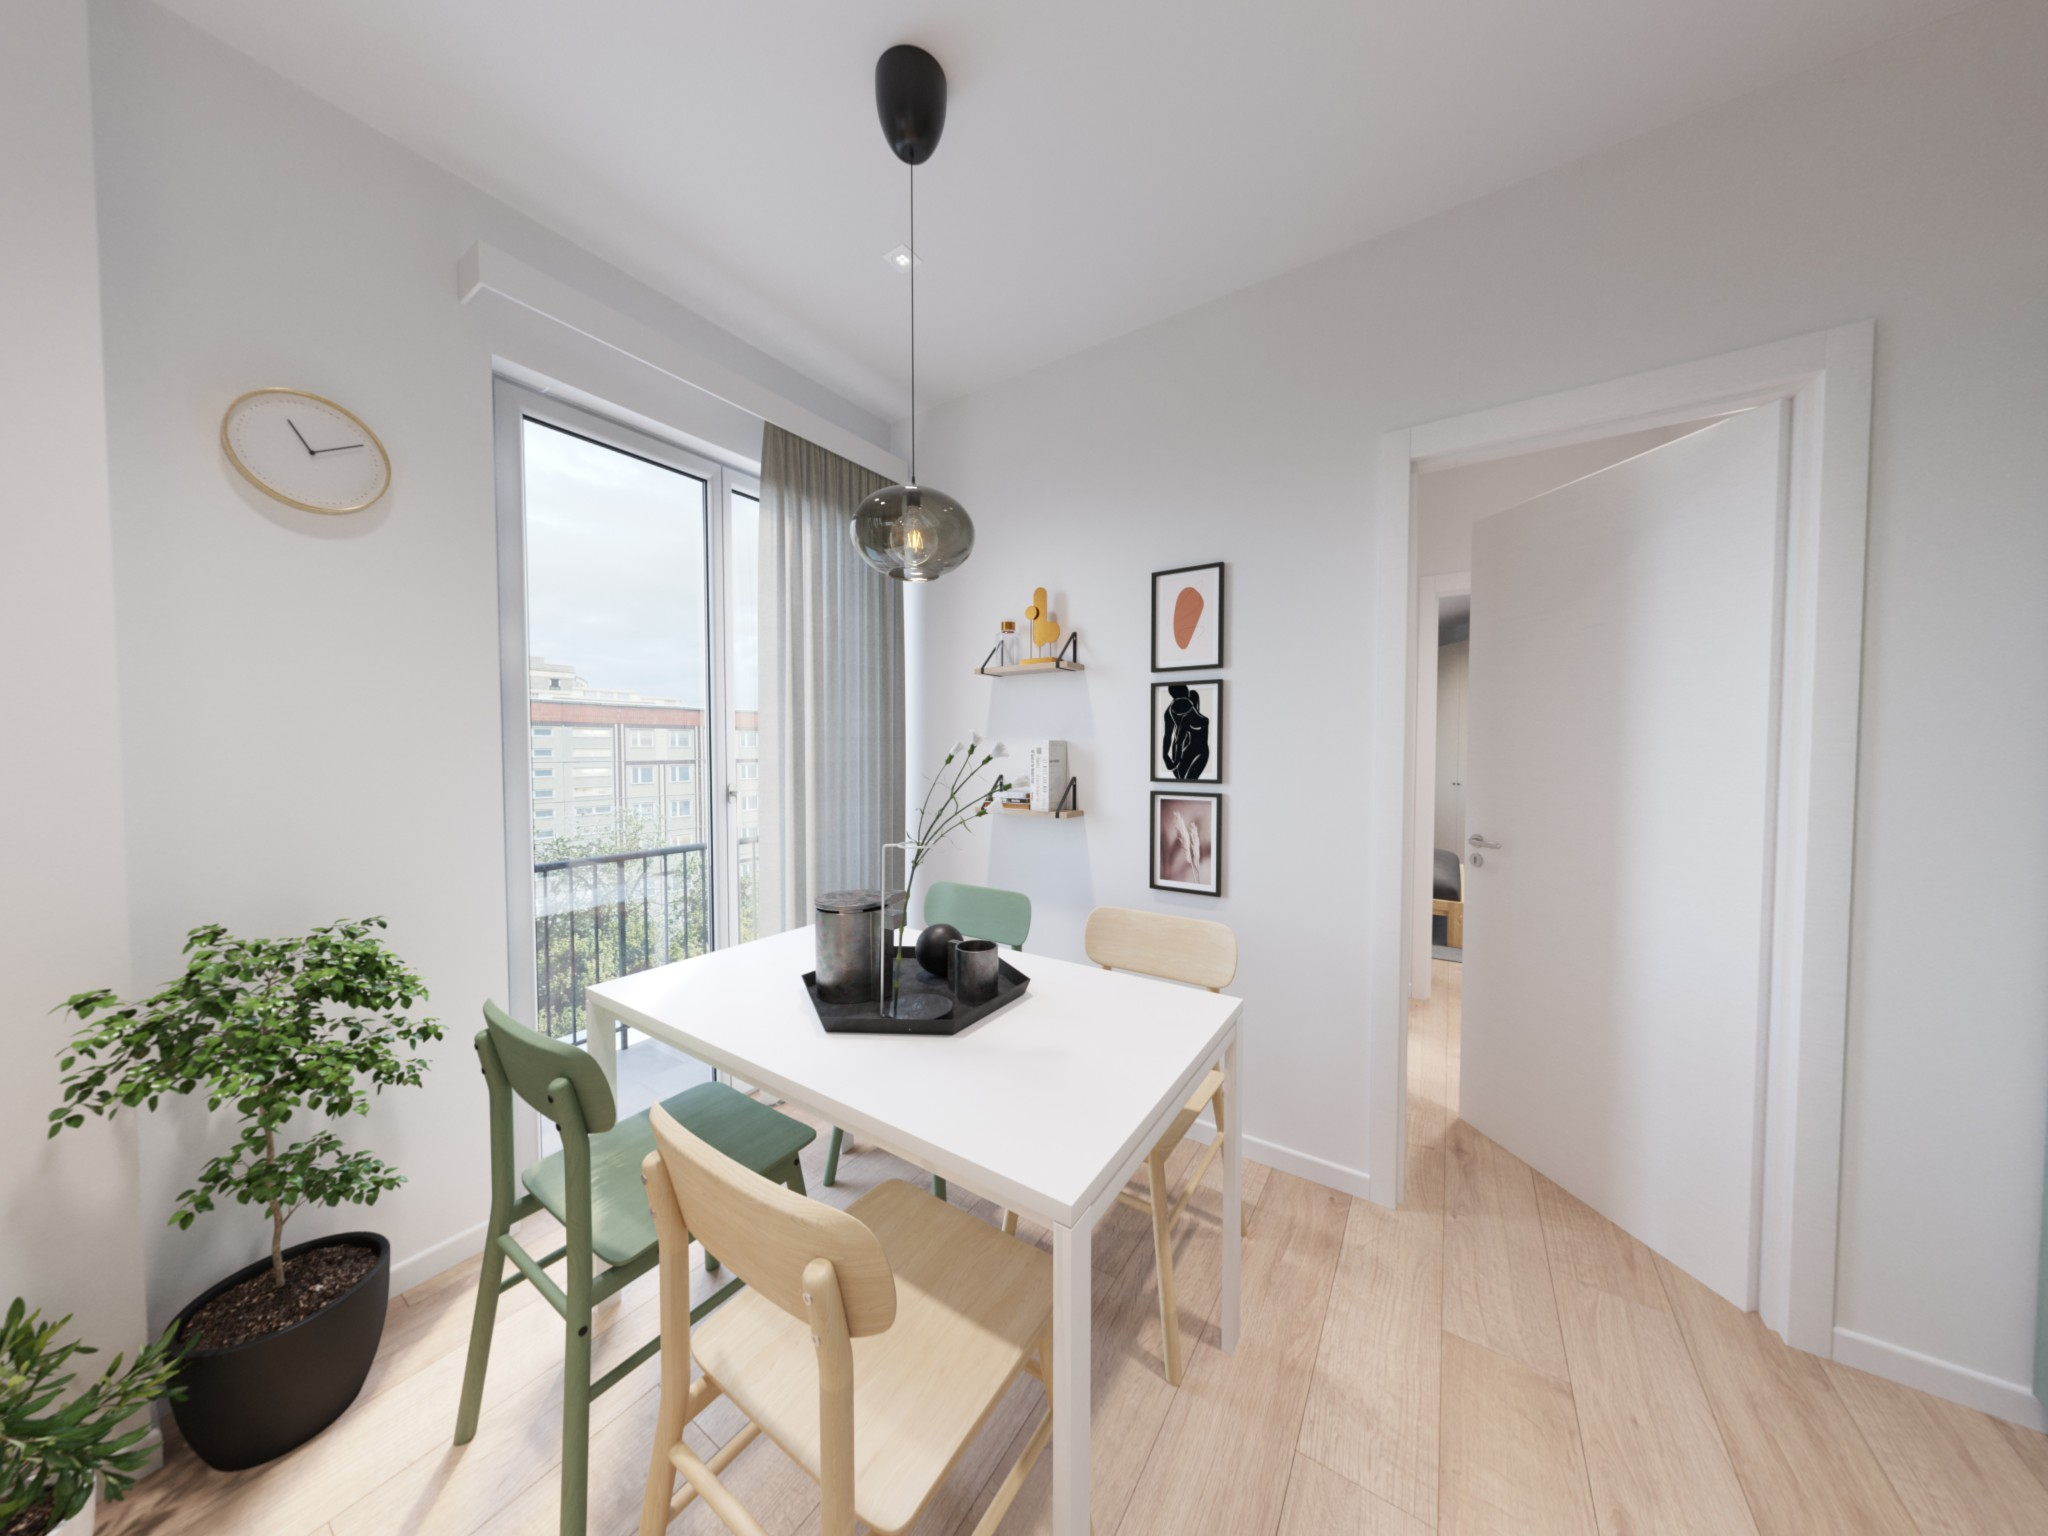 One-bedroom Apartment of 50m² in Via C. Ferrero di Cambiano 82